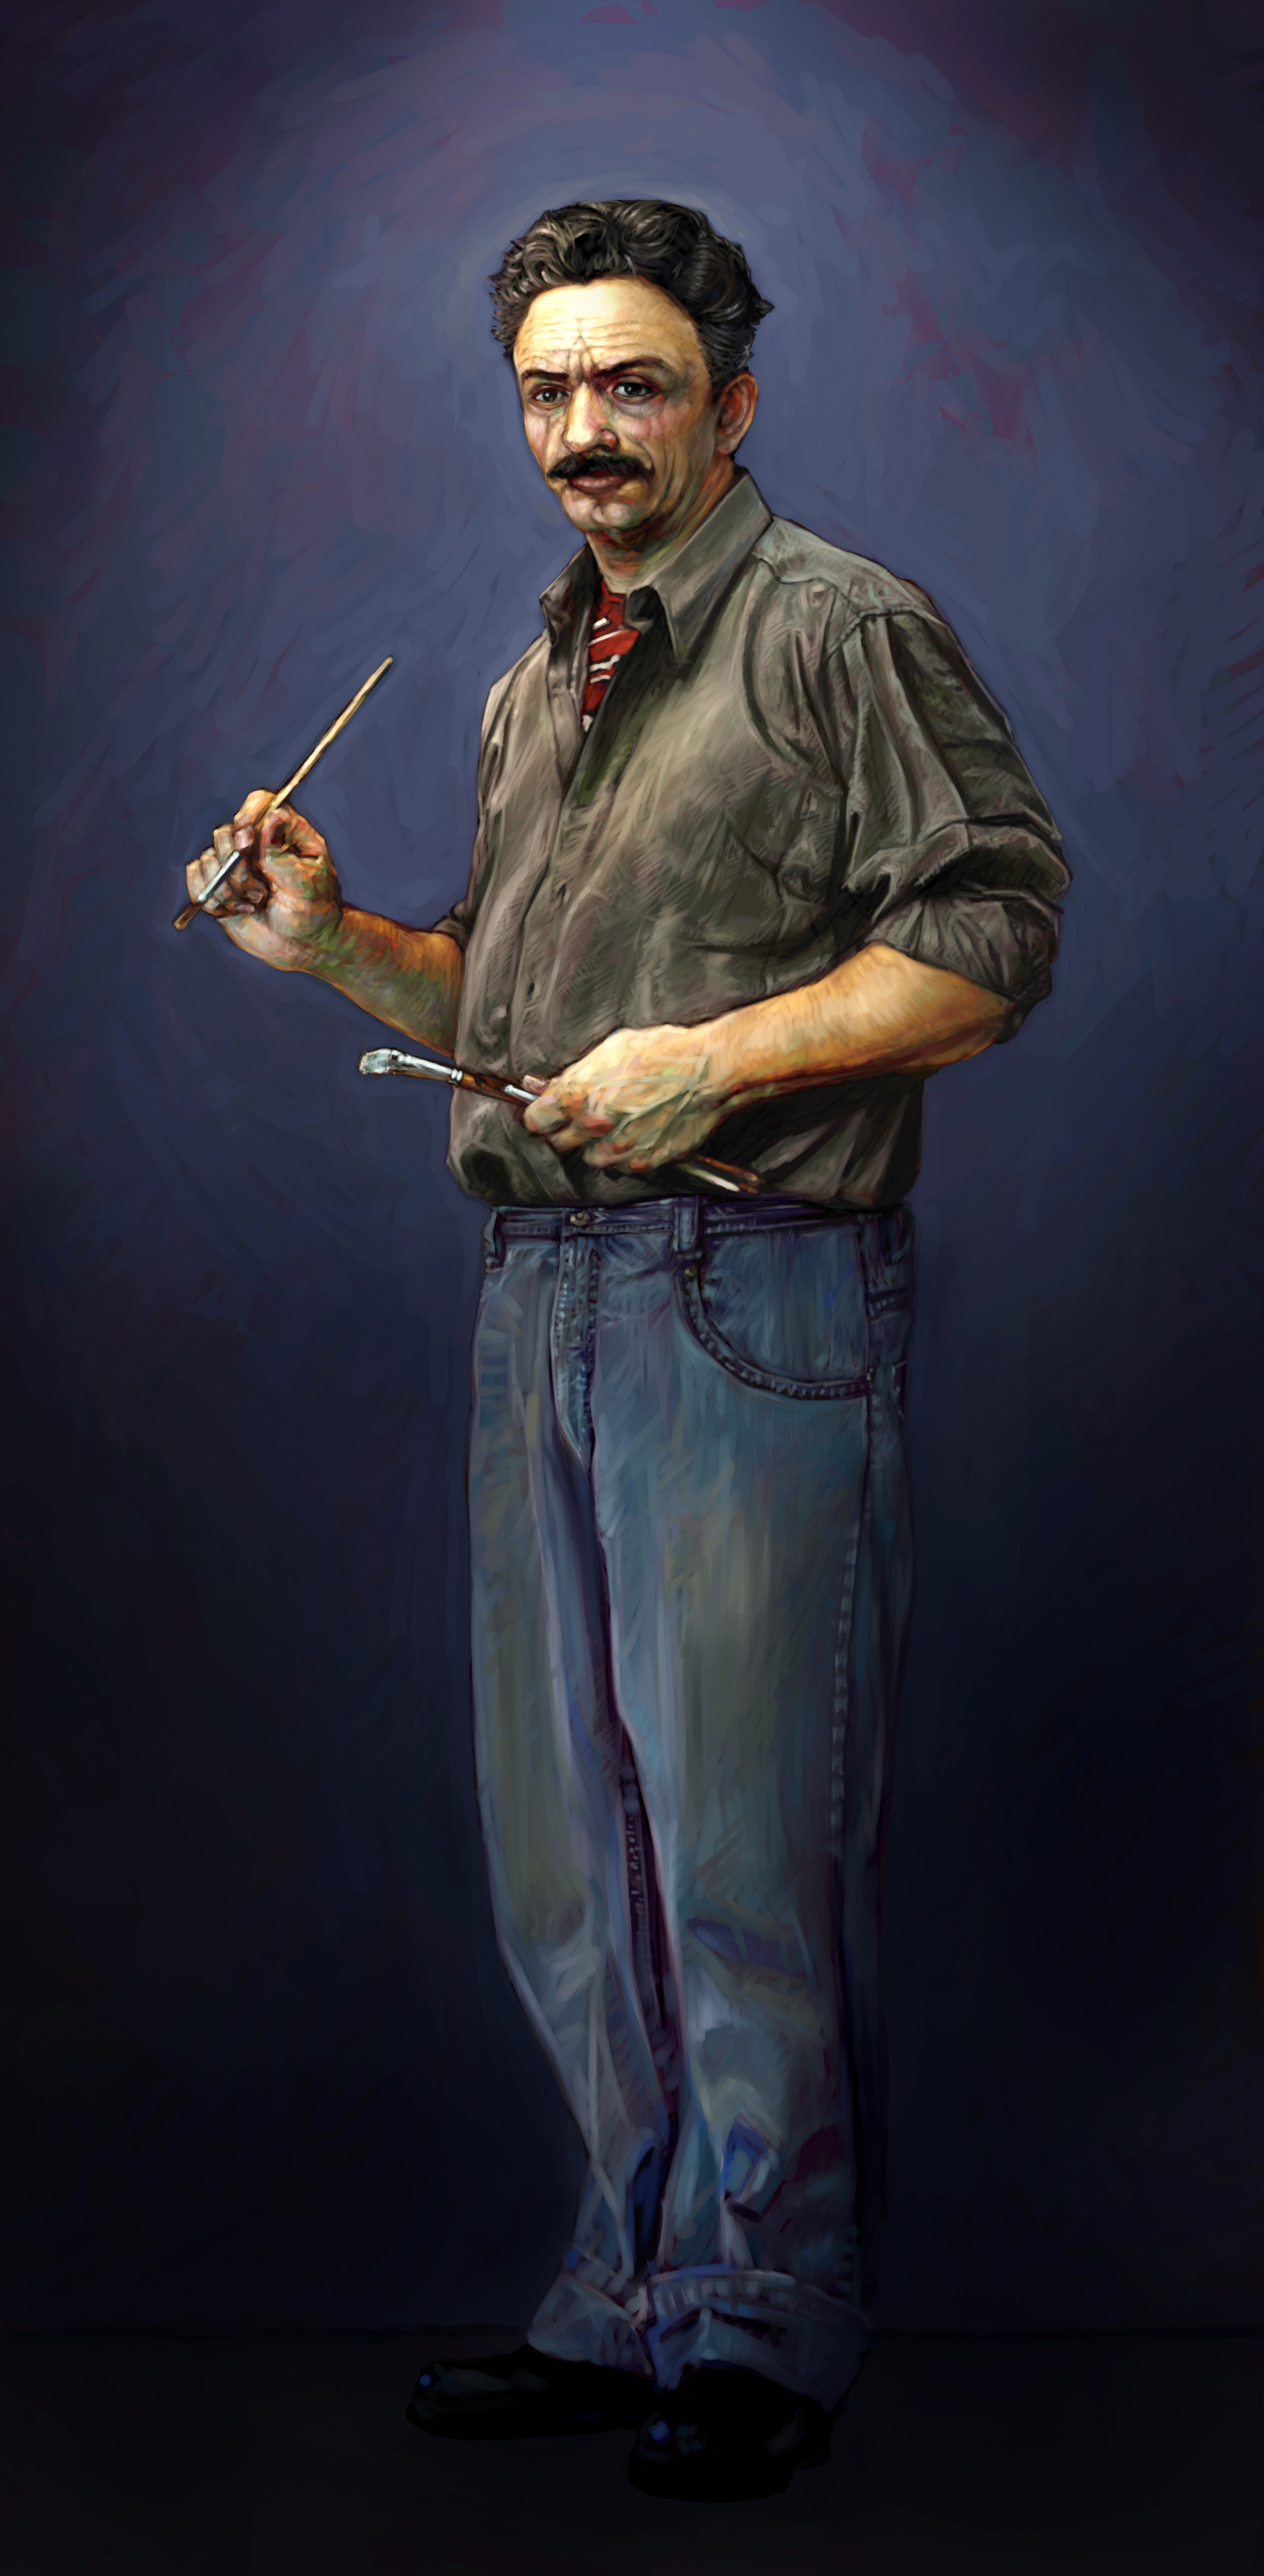 Digital painting, done at Ringling for Harcourt School Publishers